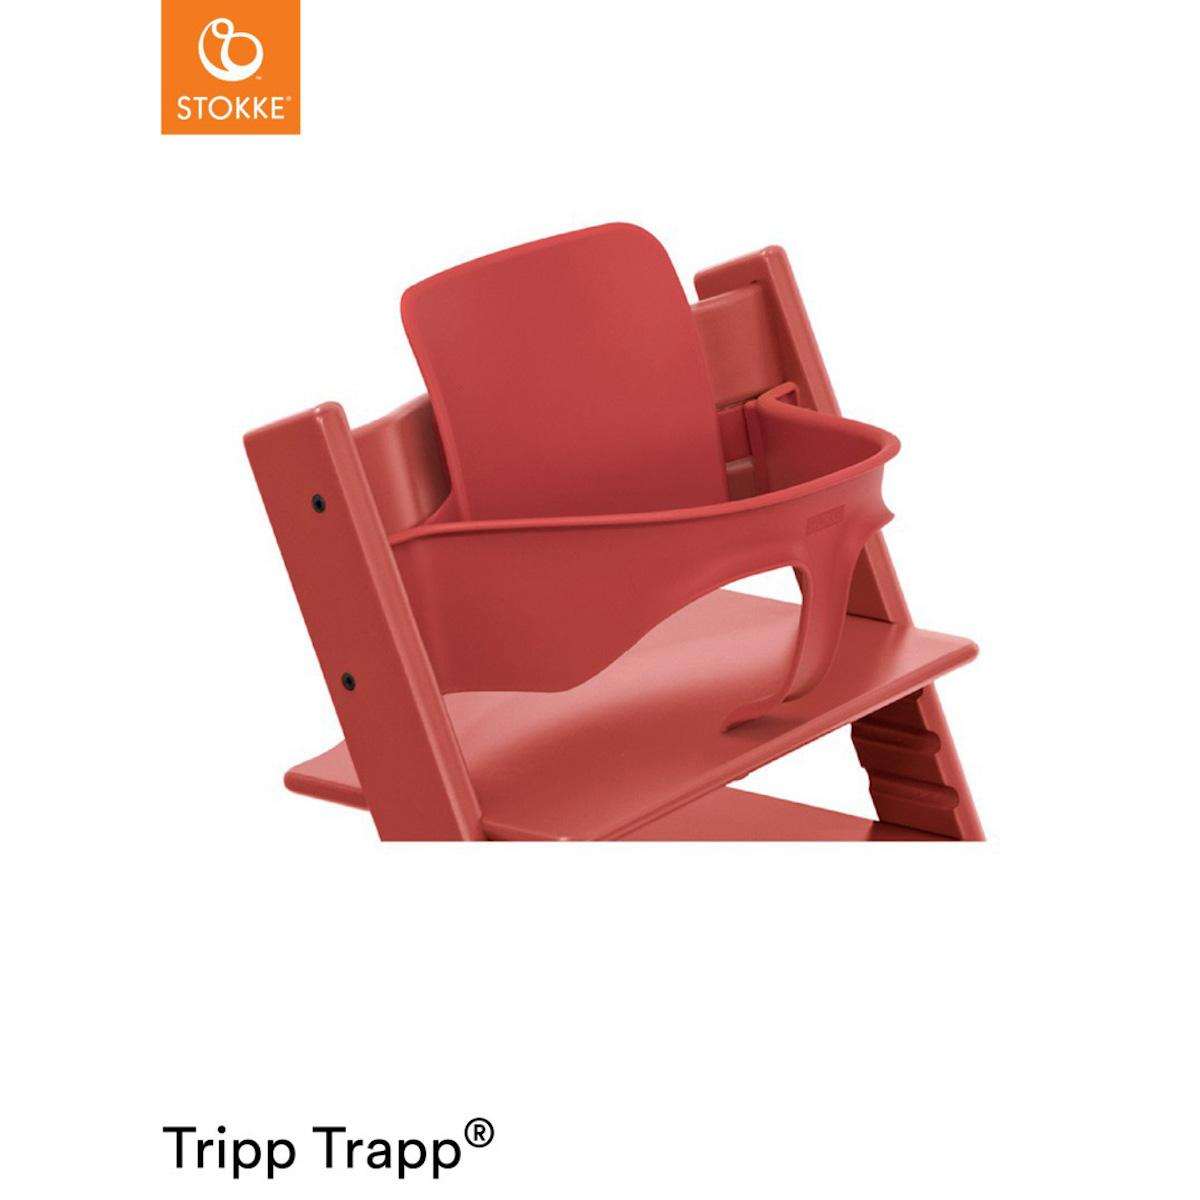 Baby set chaise haute TRIPP TRAPP Stokke Warm Red